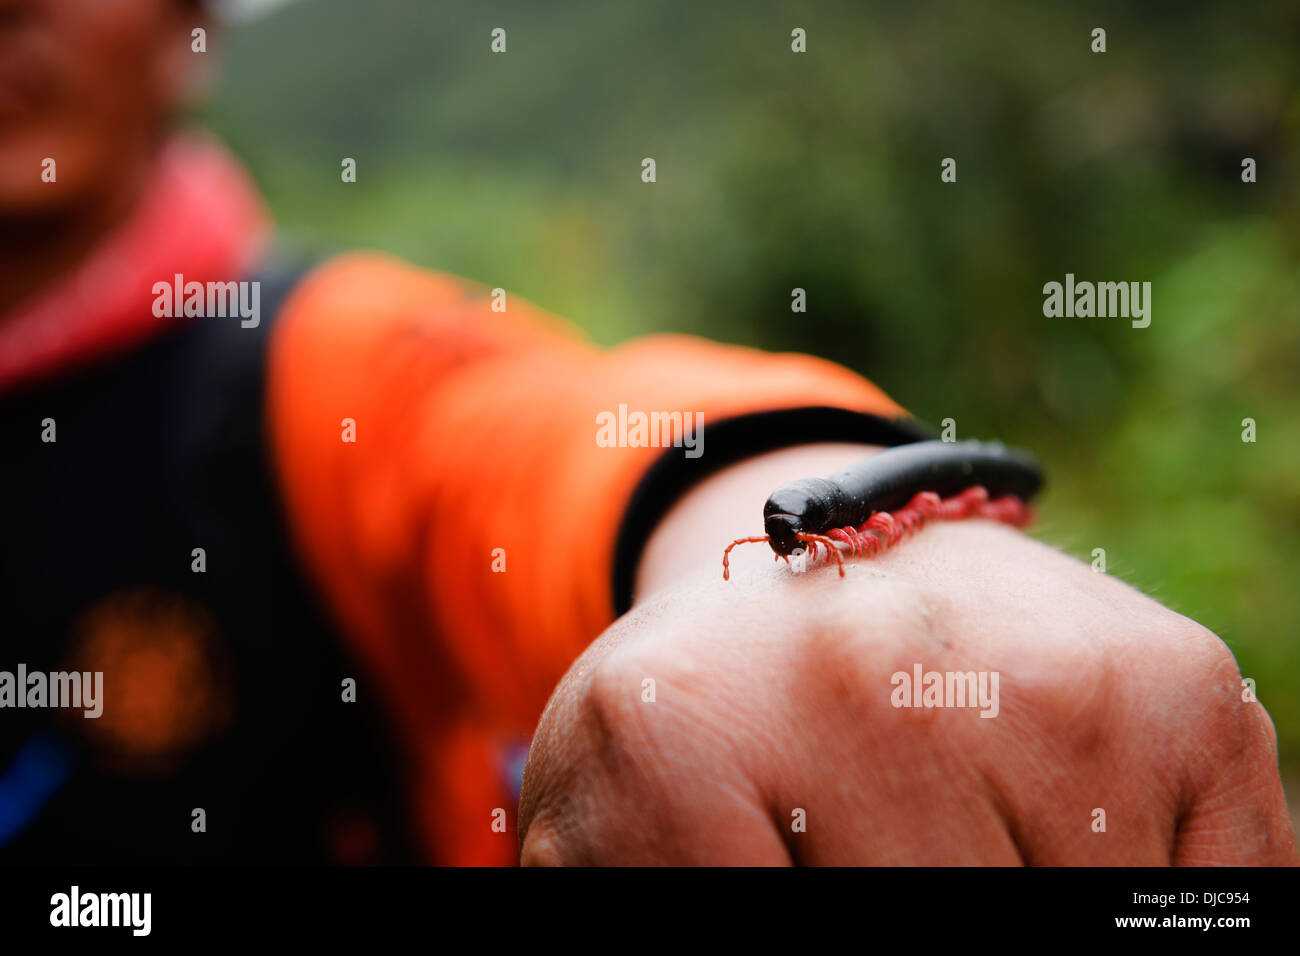 A red-legged millipede - a familiar scenery along the route of the Salkantay Trek in the Cuzco Region of Peru. Stock Photo